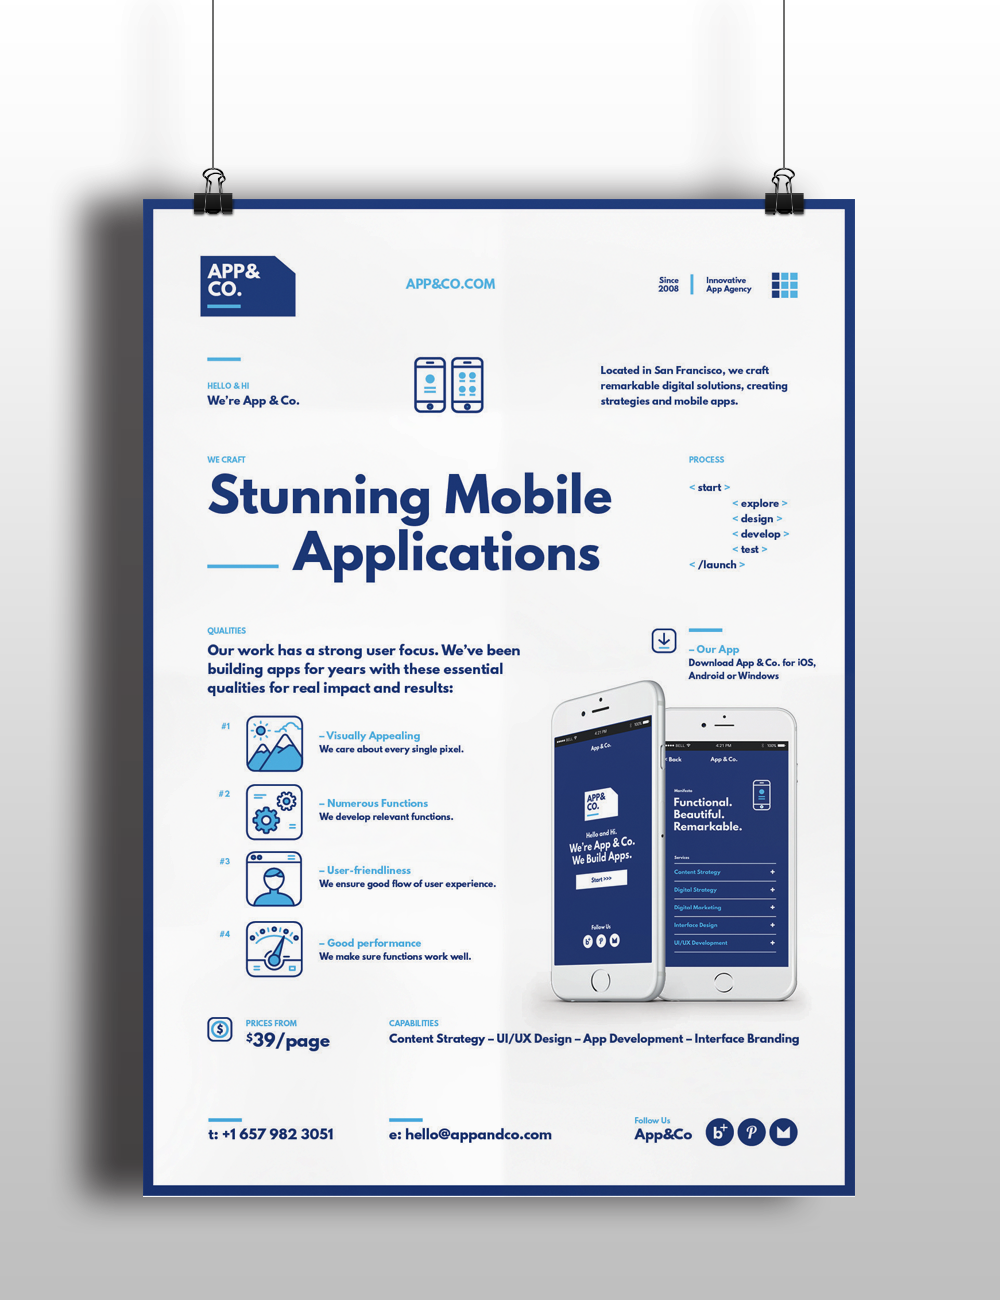 Poster design app android - A Set Of 4 Mobile Application Flyer Poster Templates Created For App Studios Or Agencies To Promote Their App Design And Development Services